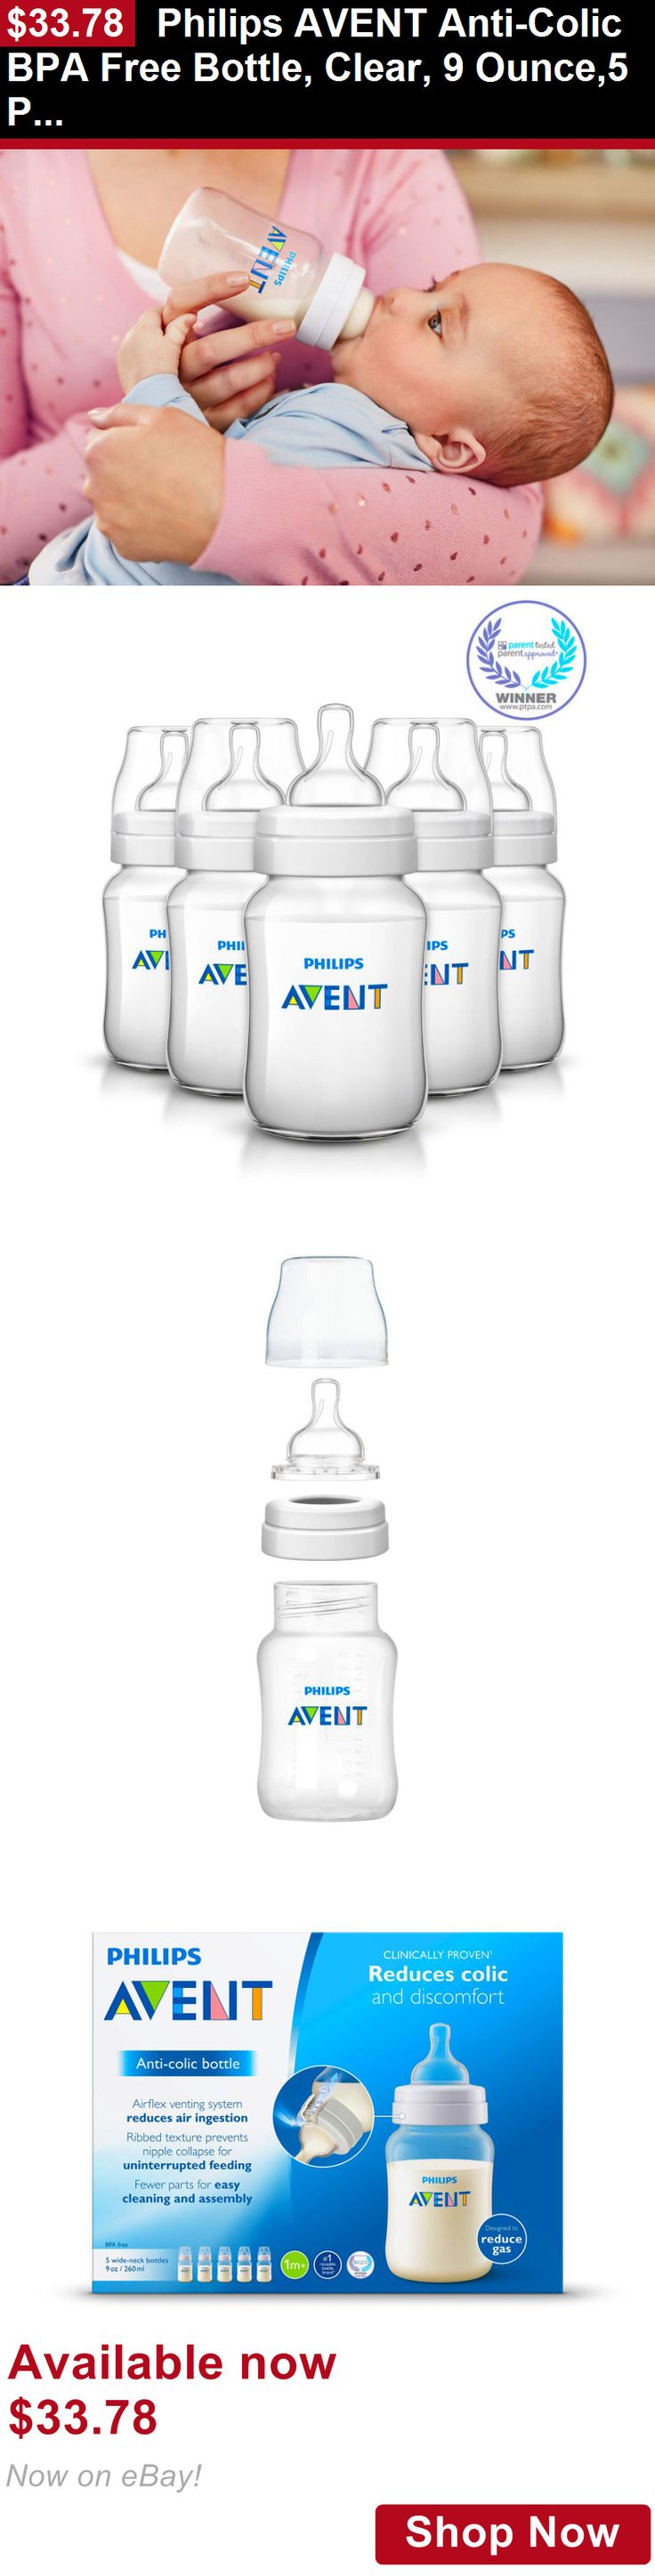 Baby Bottles: Philips Avent Anti-Colic Bpa Free Bottle, Clear, 9 Ounce,5 Piece BUY IT NOW ONLY: $33.78